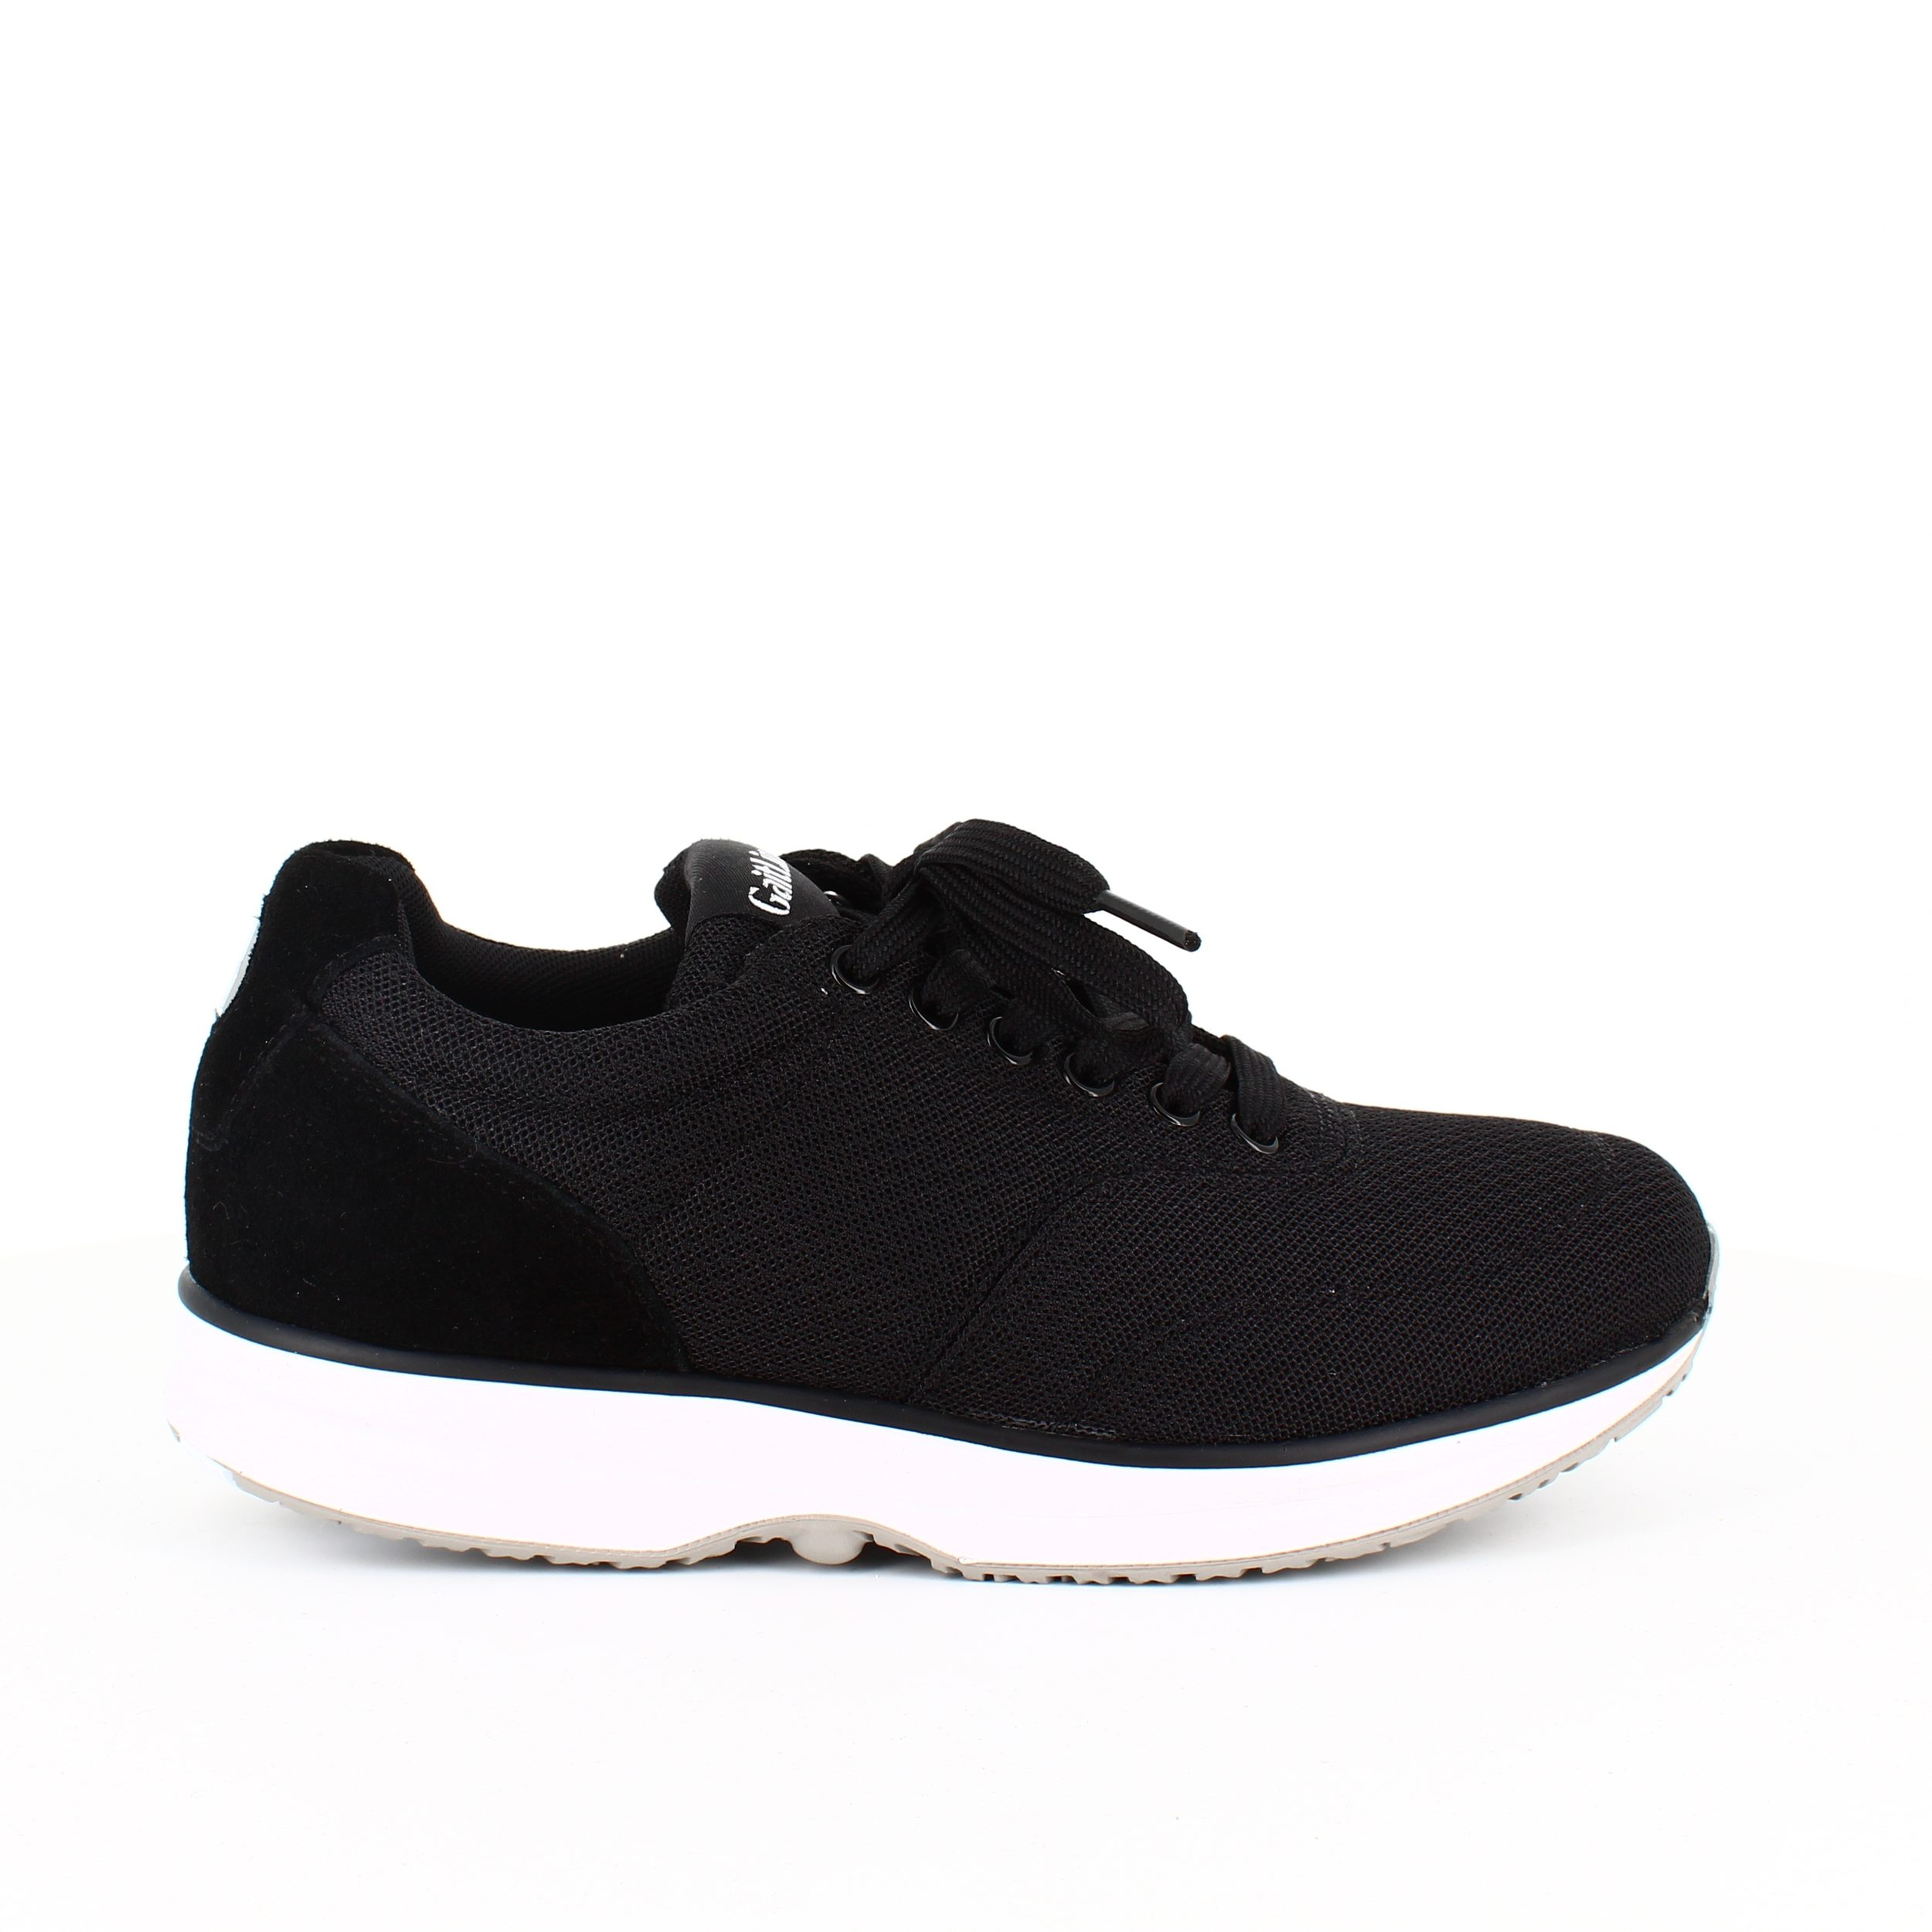 Image of   Flotte Sorte sneakers fra Gaitline - 41